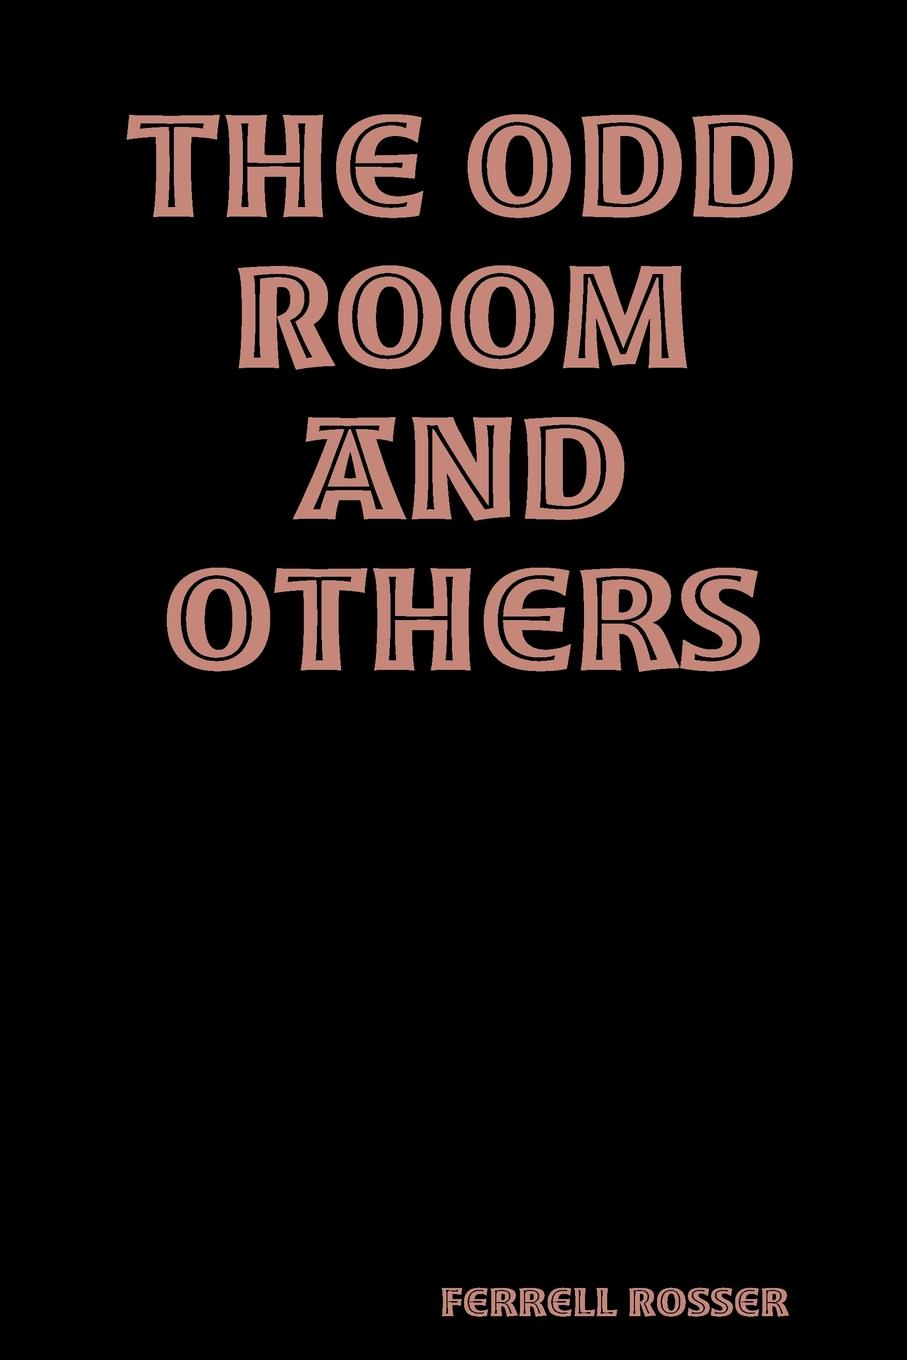 Ferrell Rosser The Odd Room and Others gothic art vampires witches demons dragons werewolves